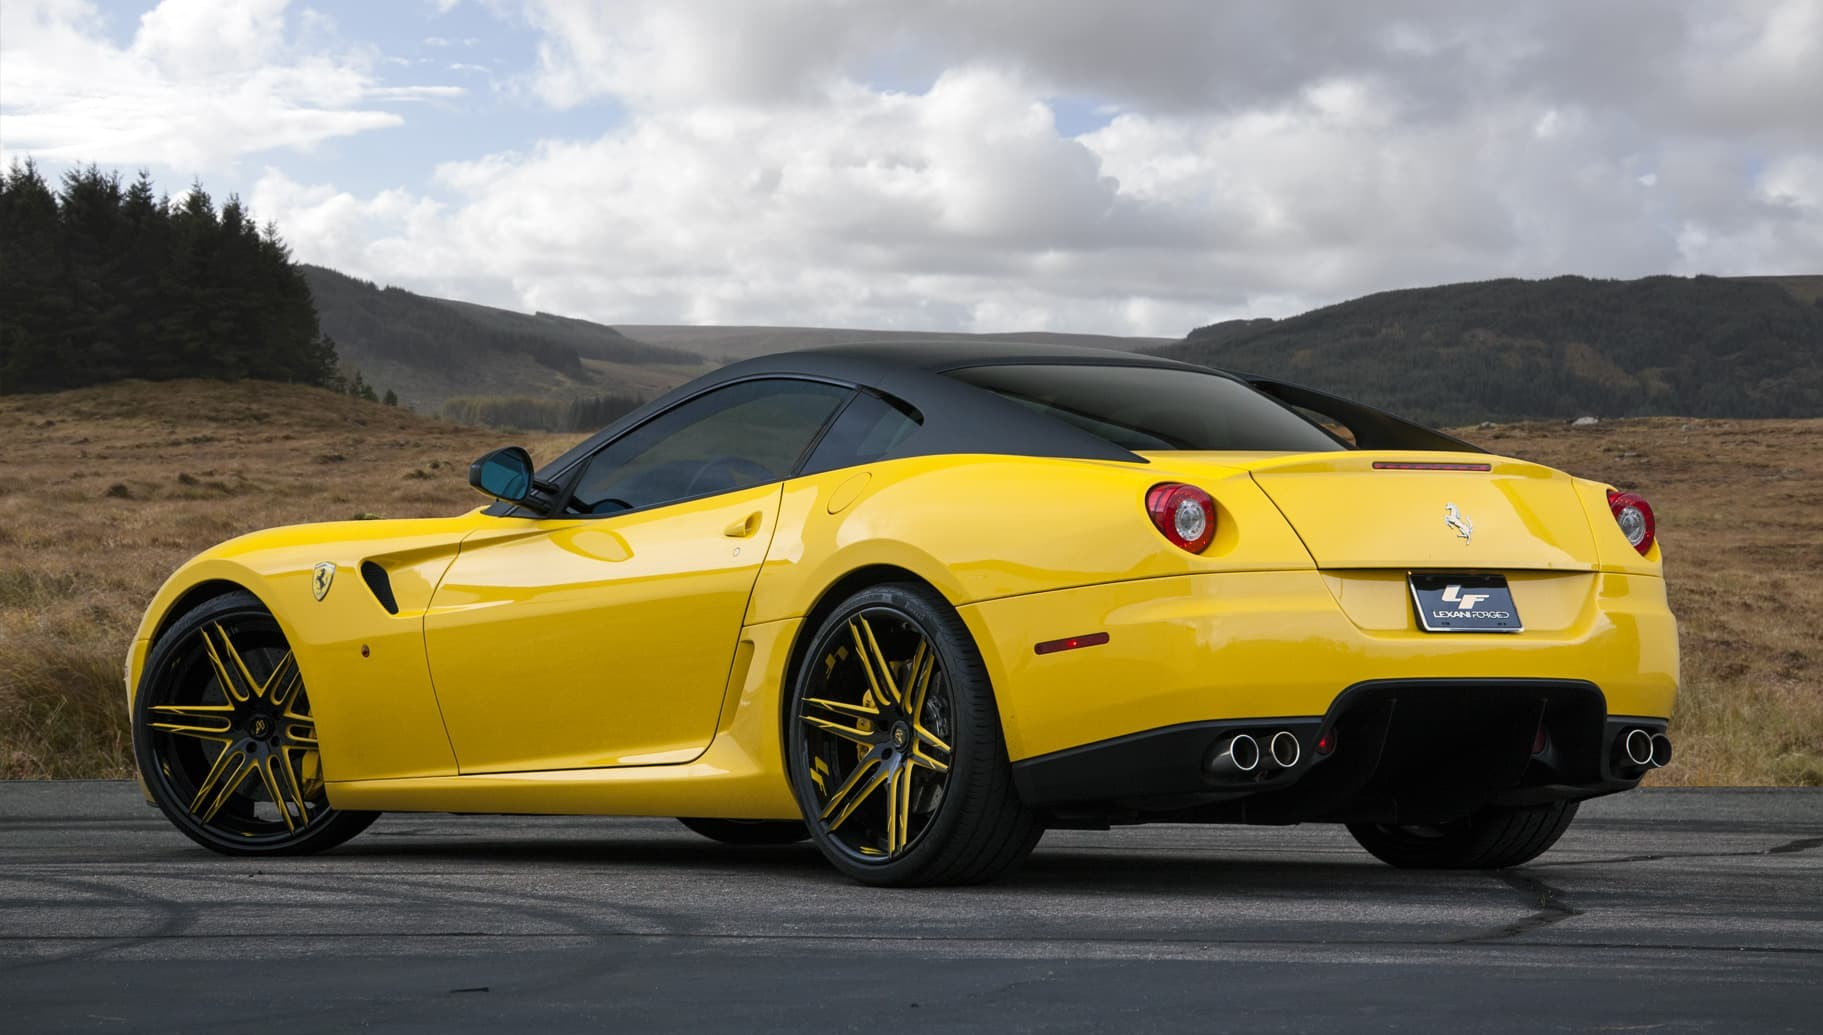 Custom LZ-106 on the Ferrari 599 GTB.